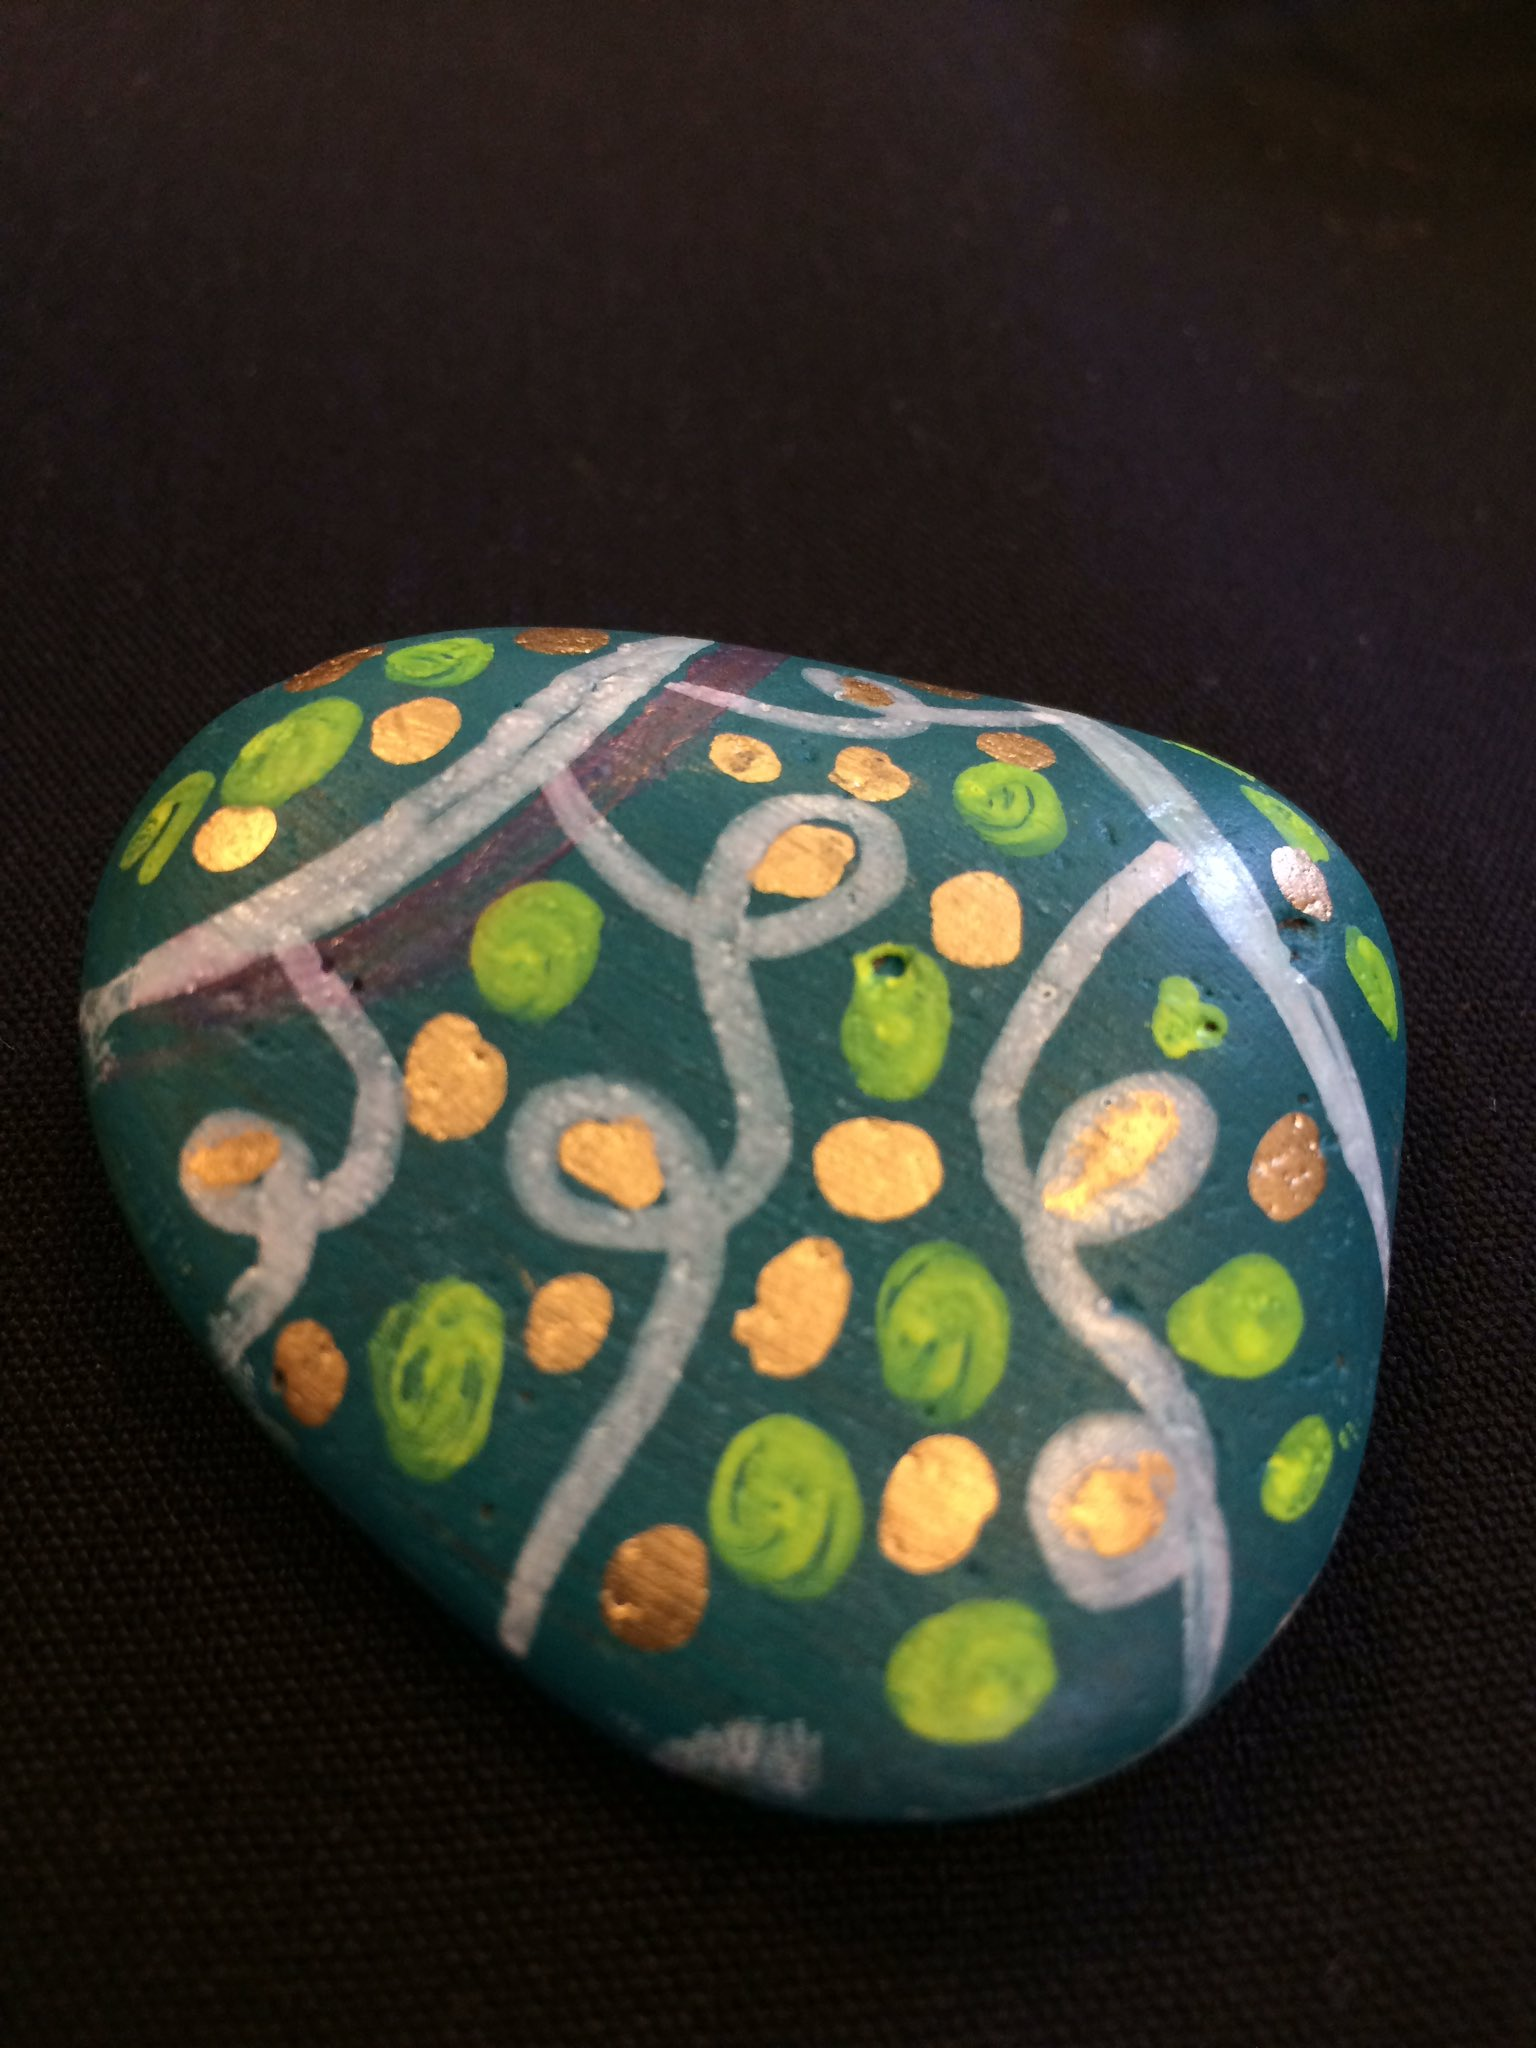 #hashtagrocks !!! Super cute rock! #sunshinewhispers #typeacon https://t.co/OS54h1gFBR